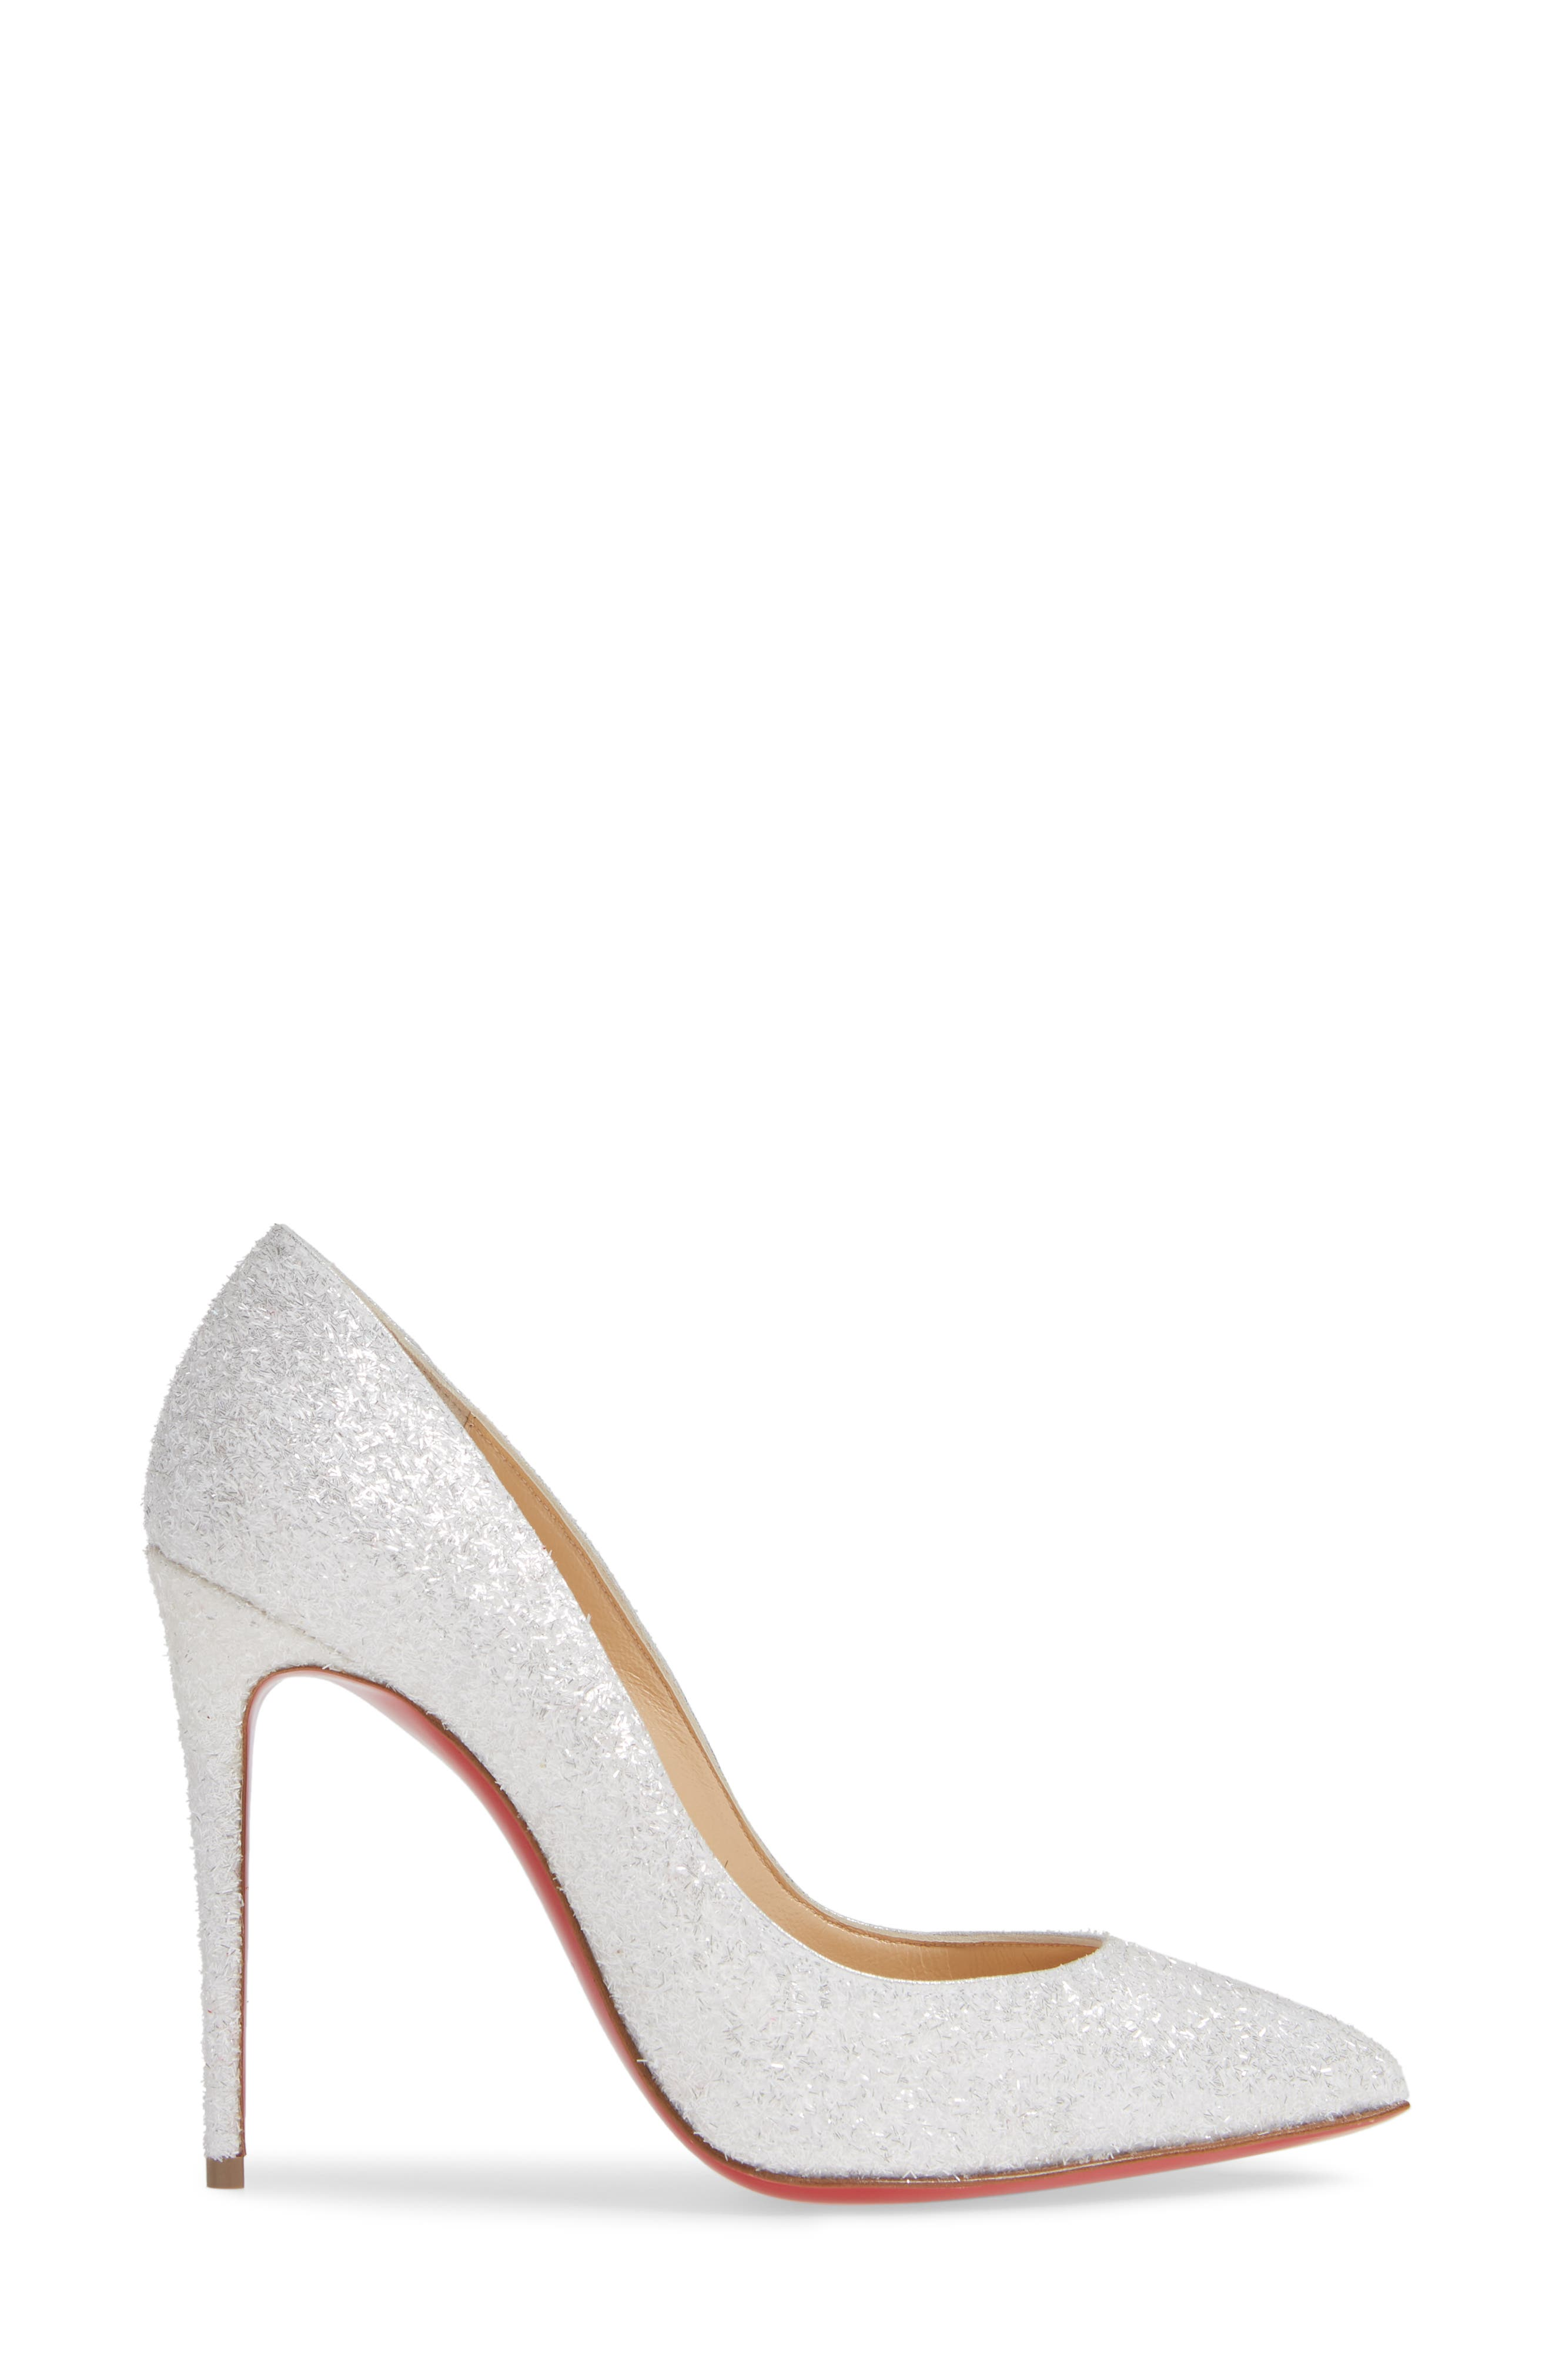 CHRISTIAN LOUBOUTIN, Pigalle Follies Pointy Toe Pump, Alternate thumbnail 3, color, WHITE GLITTER